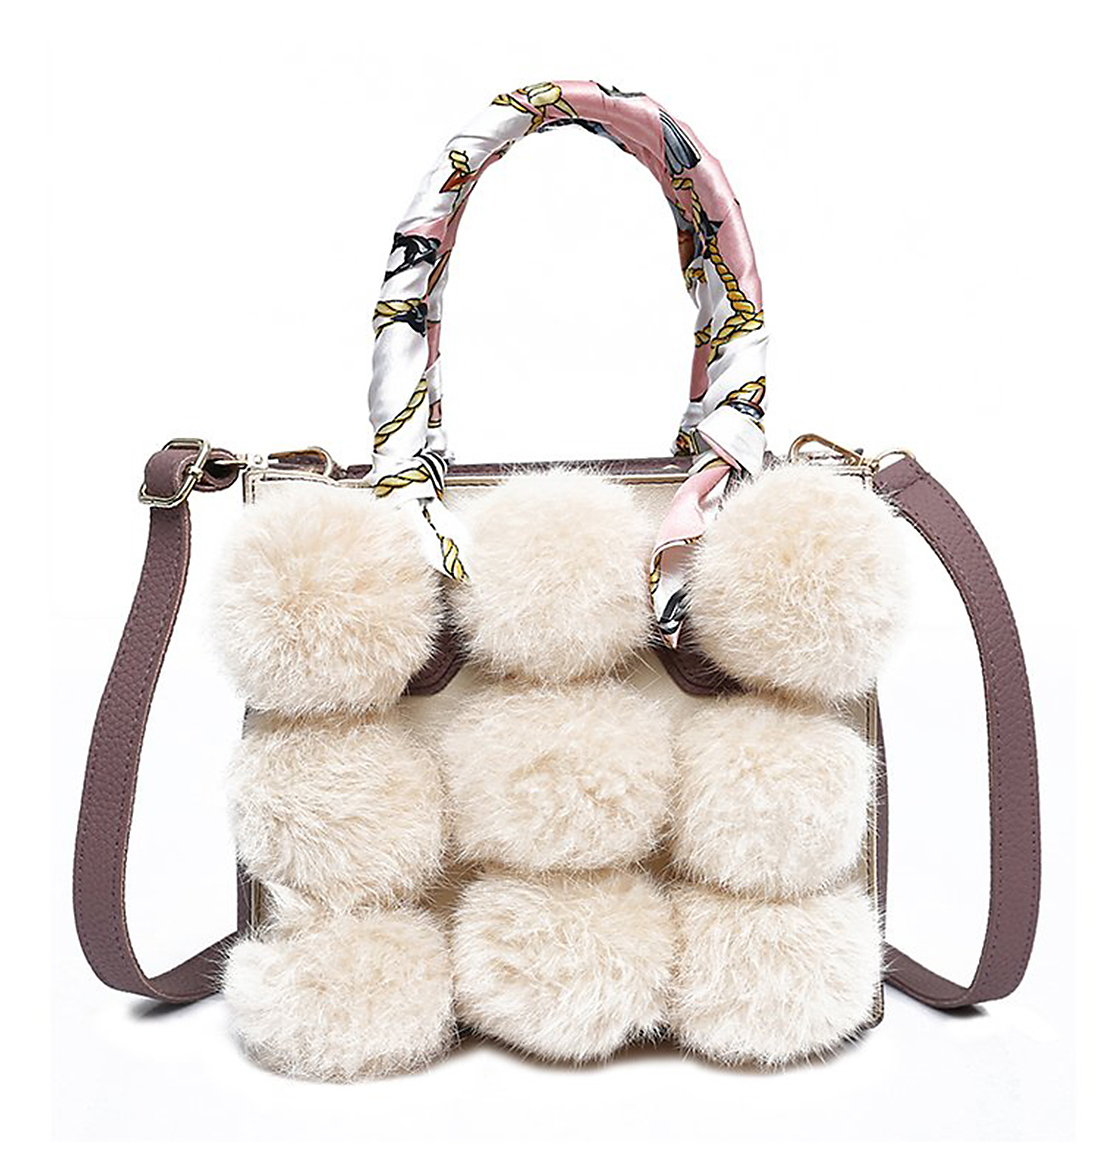 New Luxury 2018 Designer Women Fur Ball Handbag Shoulder Bags Female PU Leather Ribbon Handle Bag 4pcs new for ball uff bes m18mg noc80b s04g